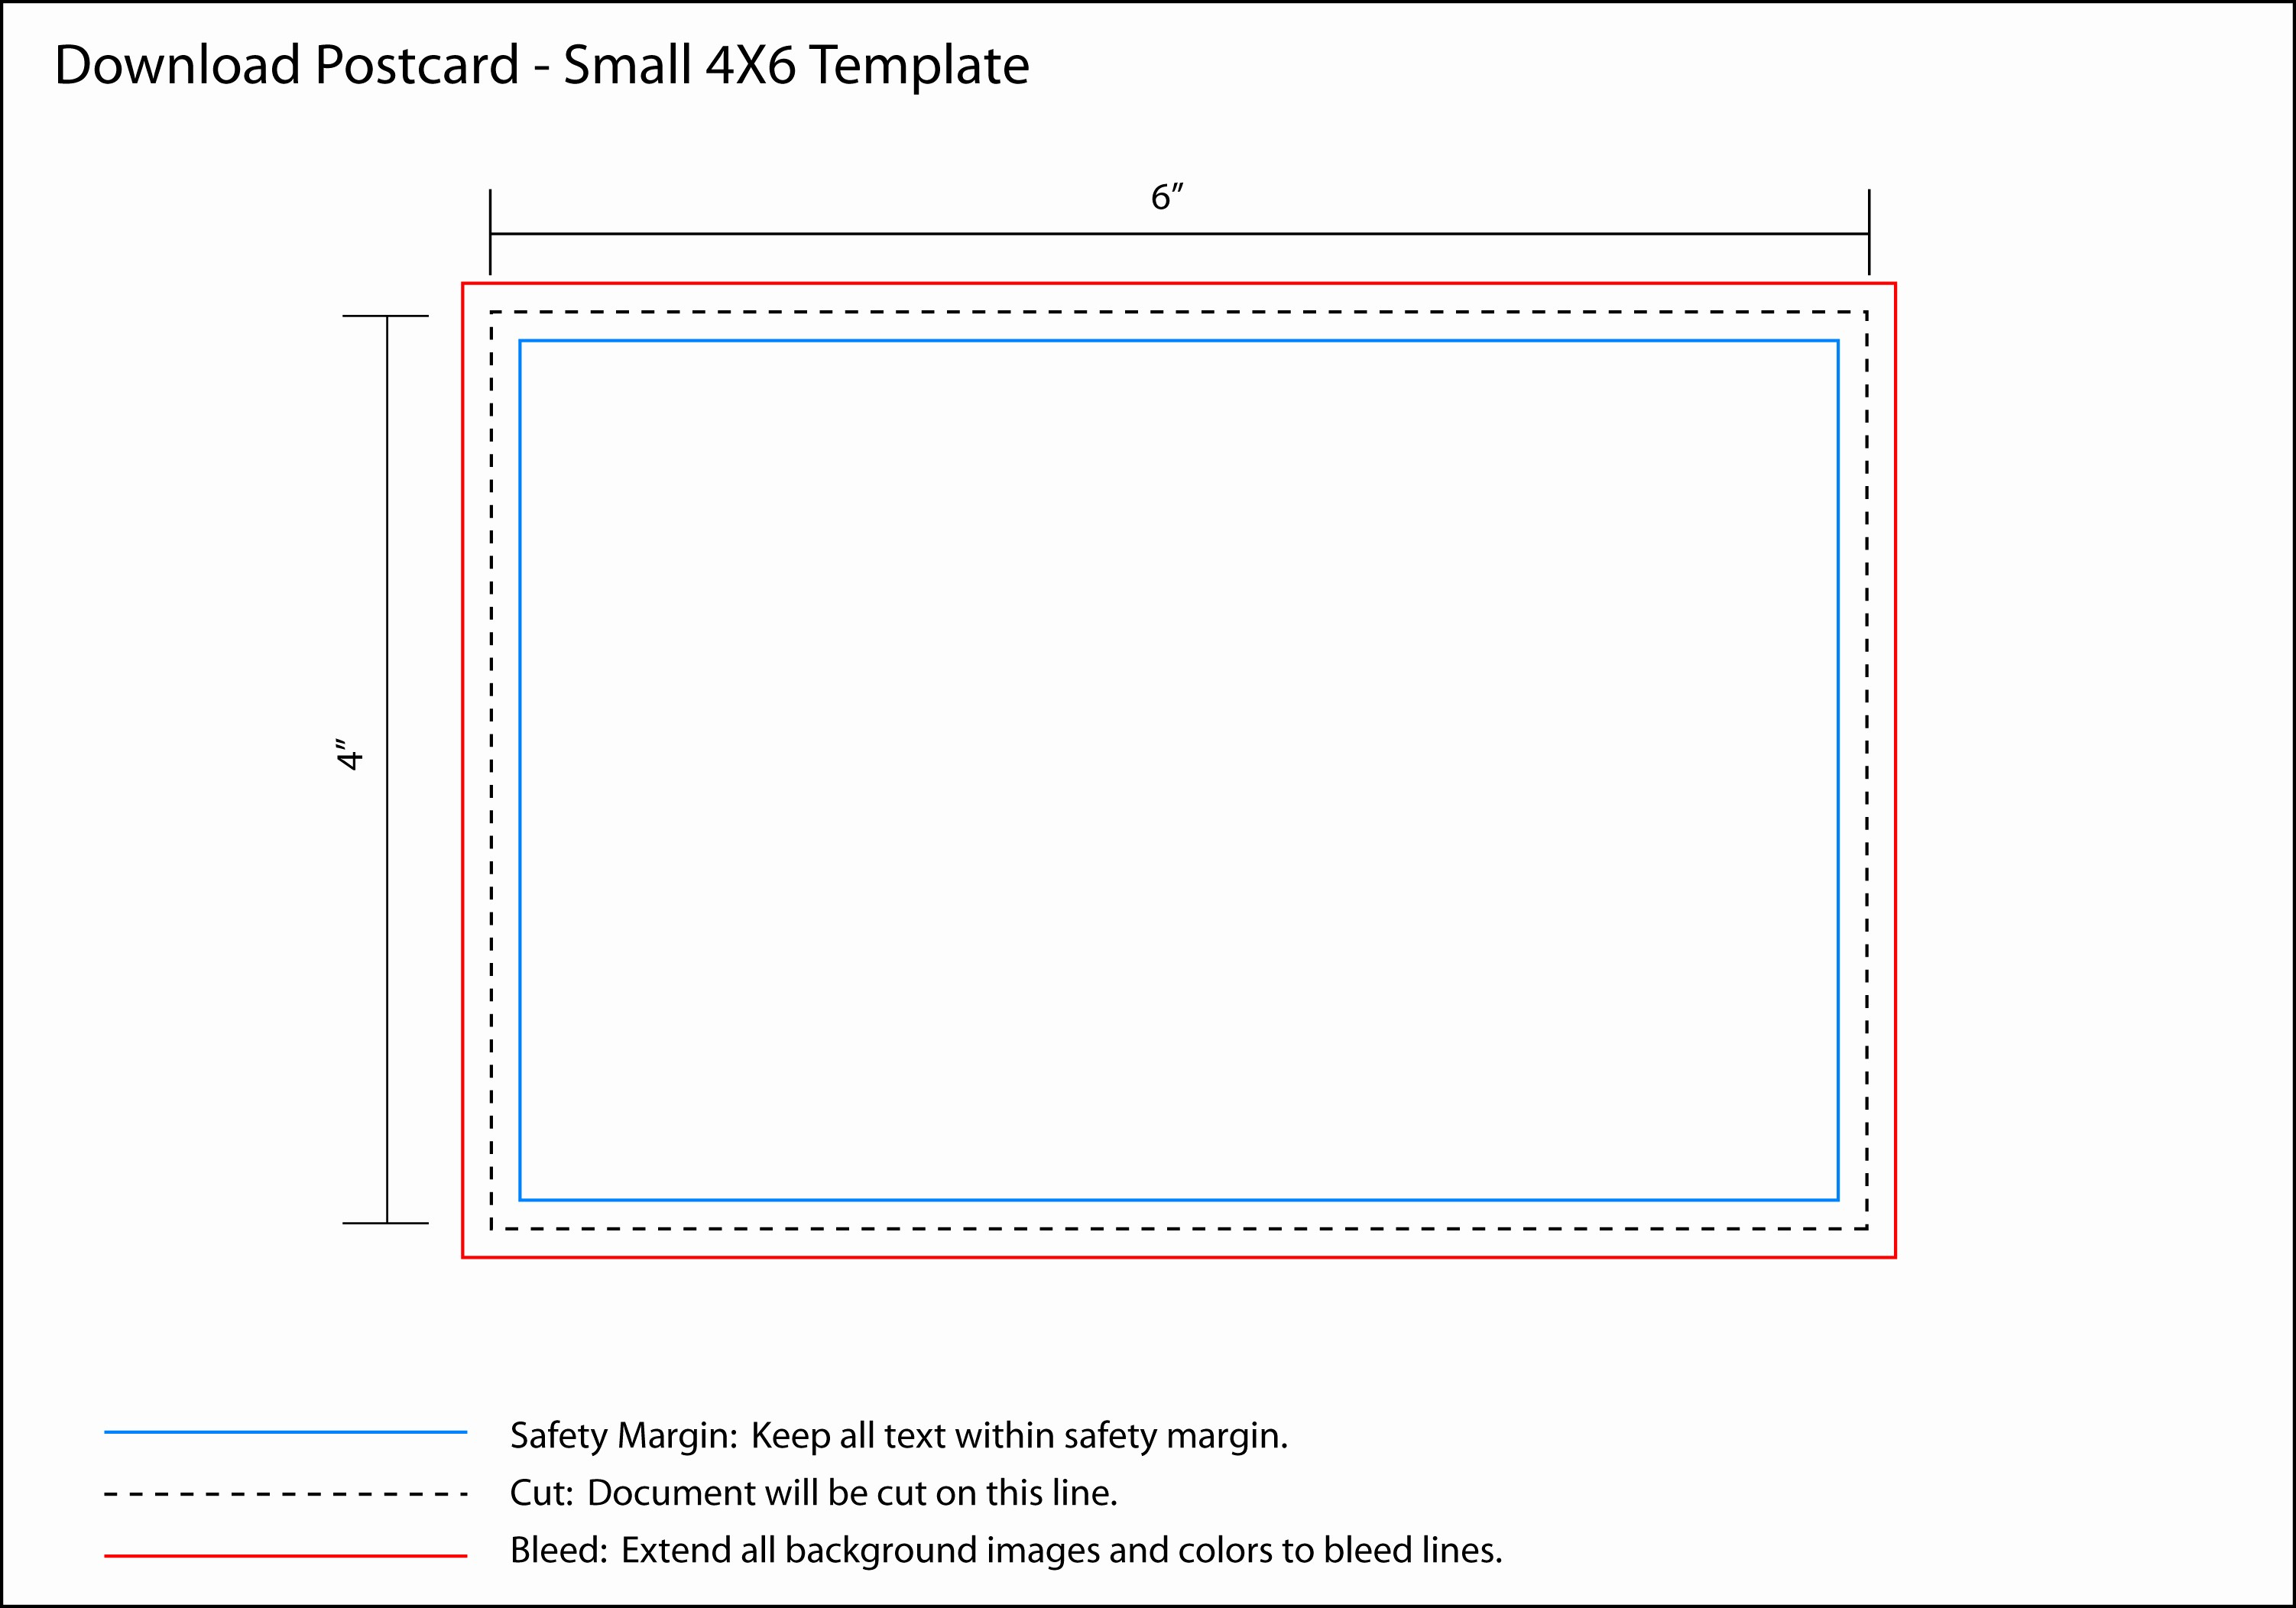 Microsoft Word 4x6 Card Template New 4x6 Postcard Template Word Bing Images